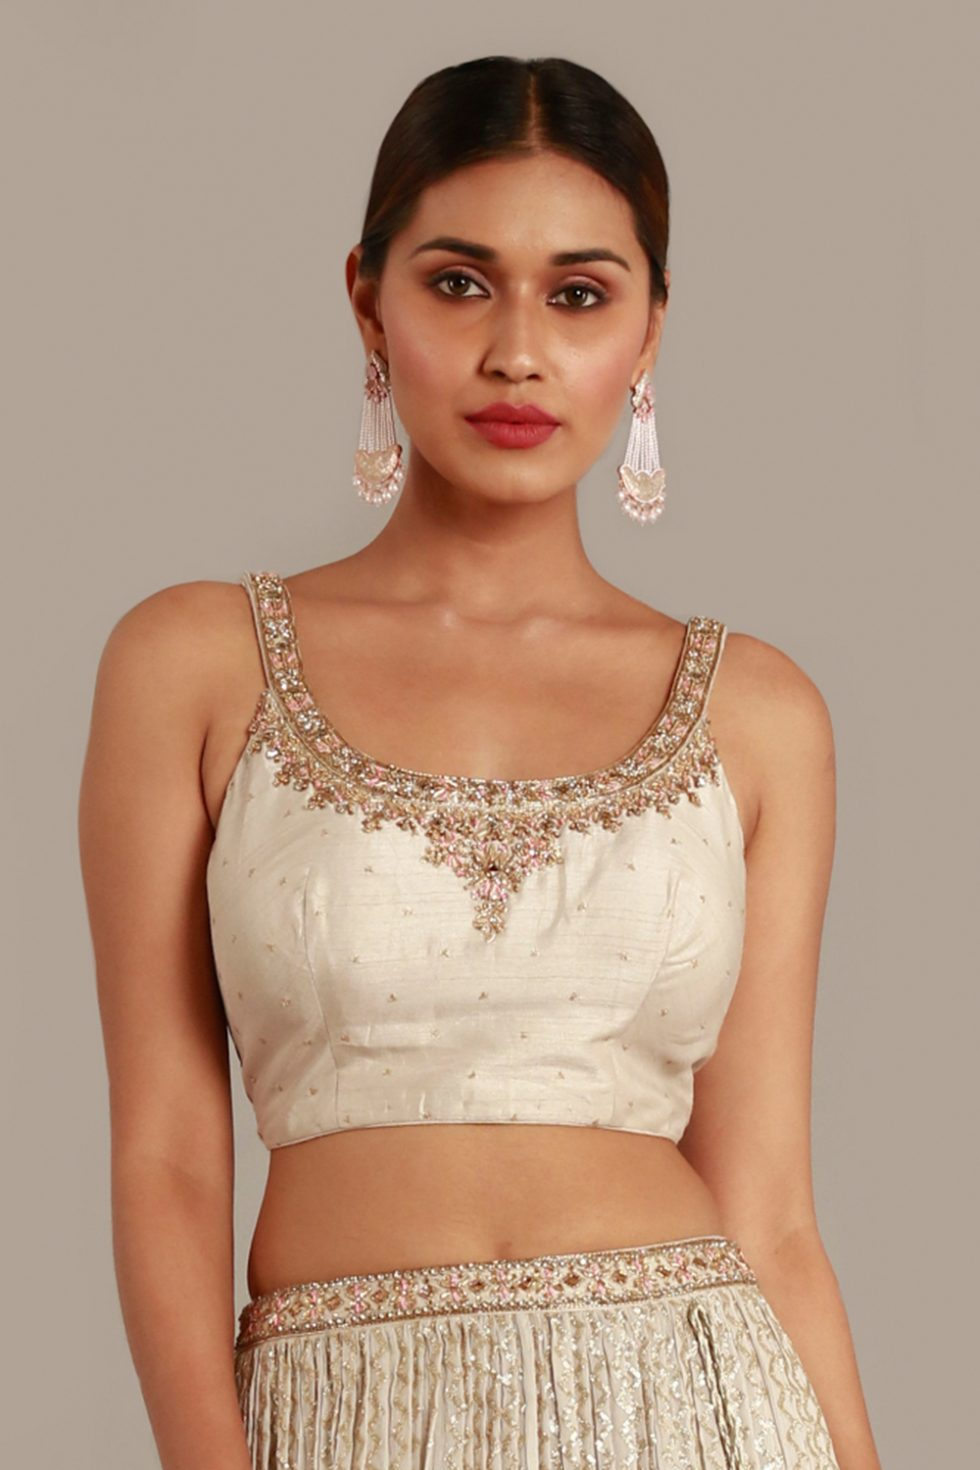 Pastel grey blouse with gold embroidered neckline and butis